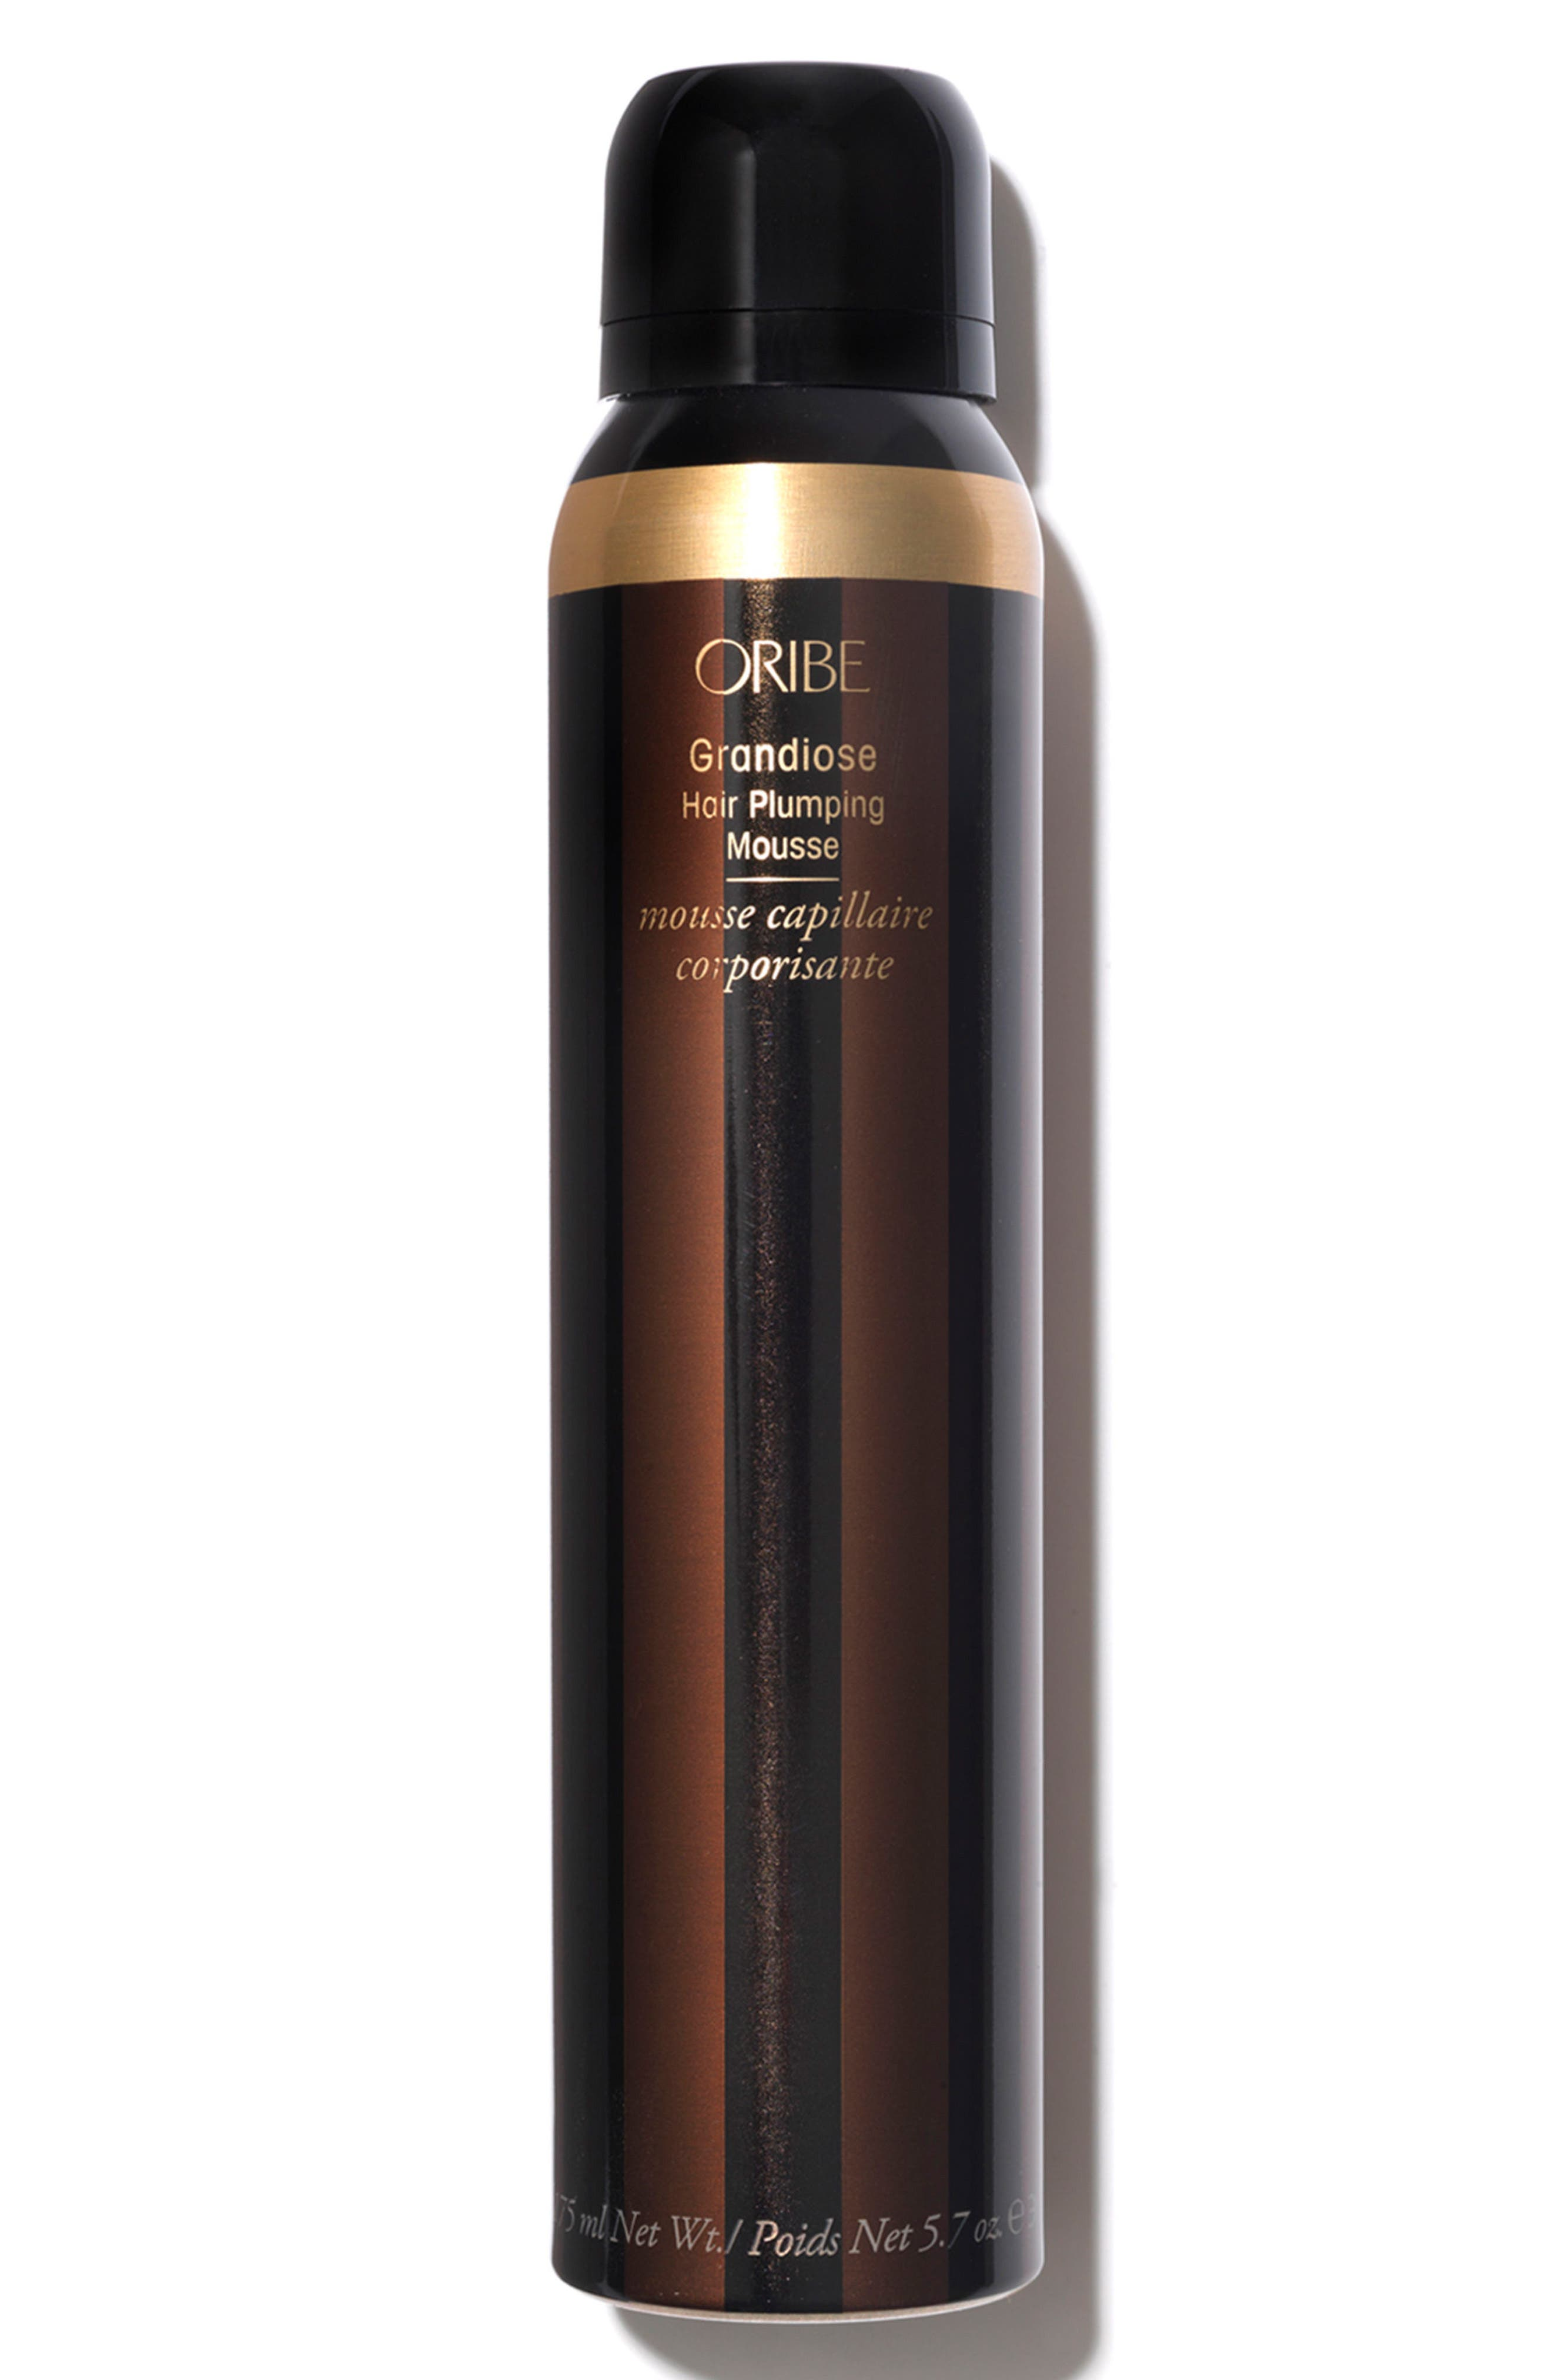 SPACE.NK.apothecary Oribe Grandiose Hair Plumping Mousse,                             Main thumbnail 1, color,                             No Color